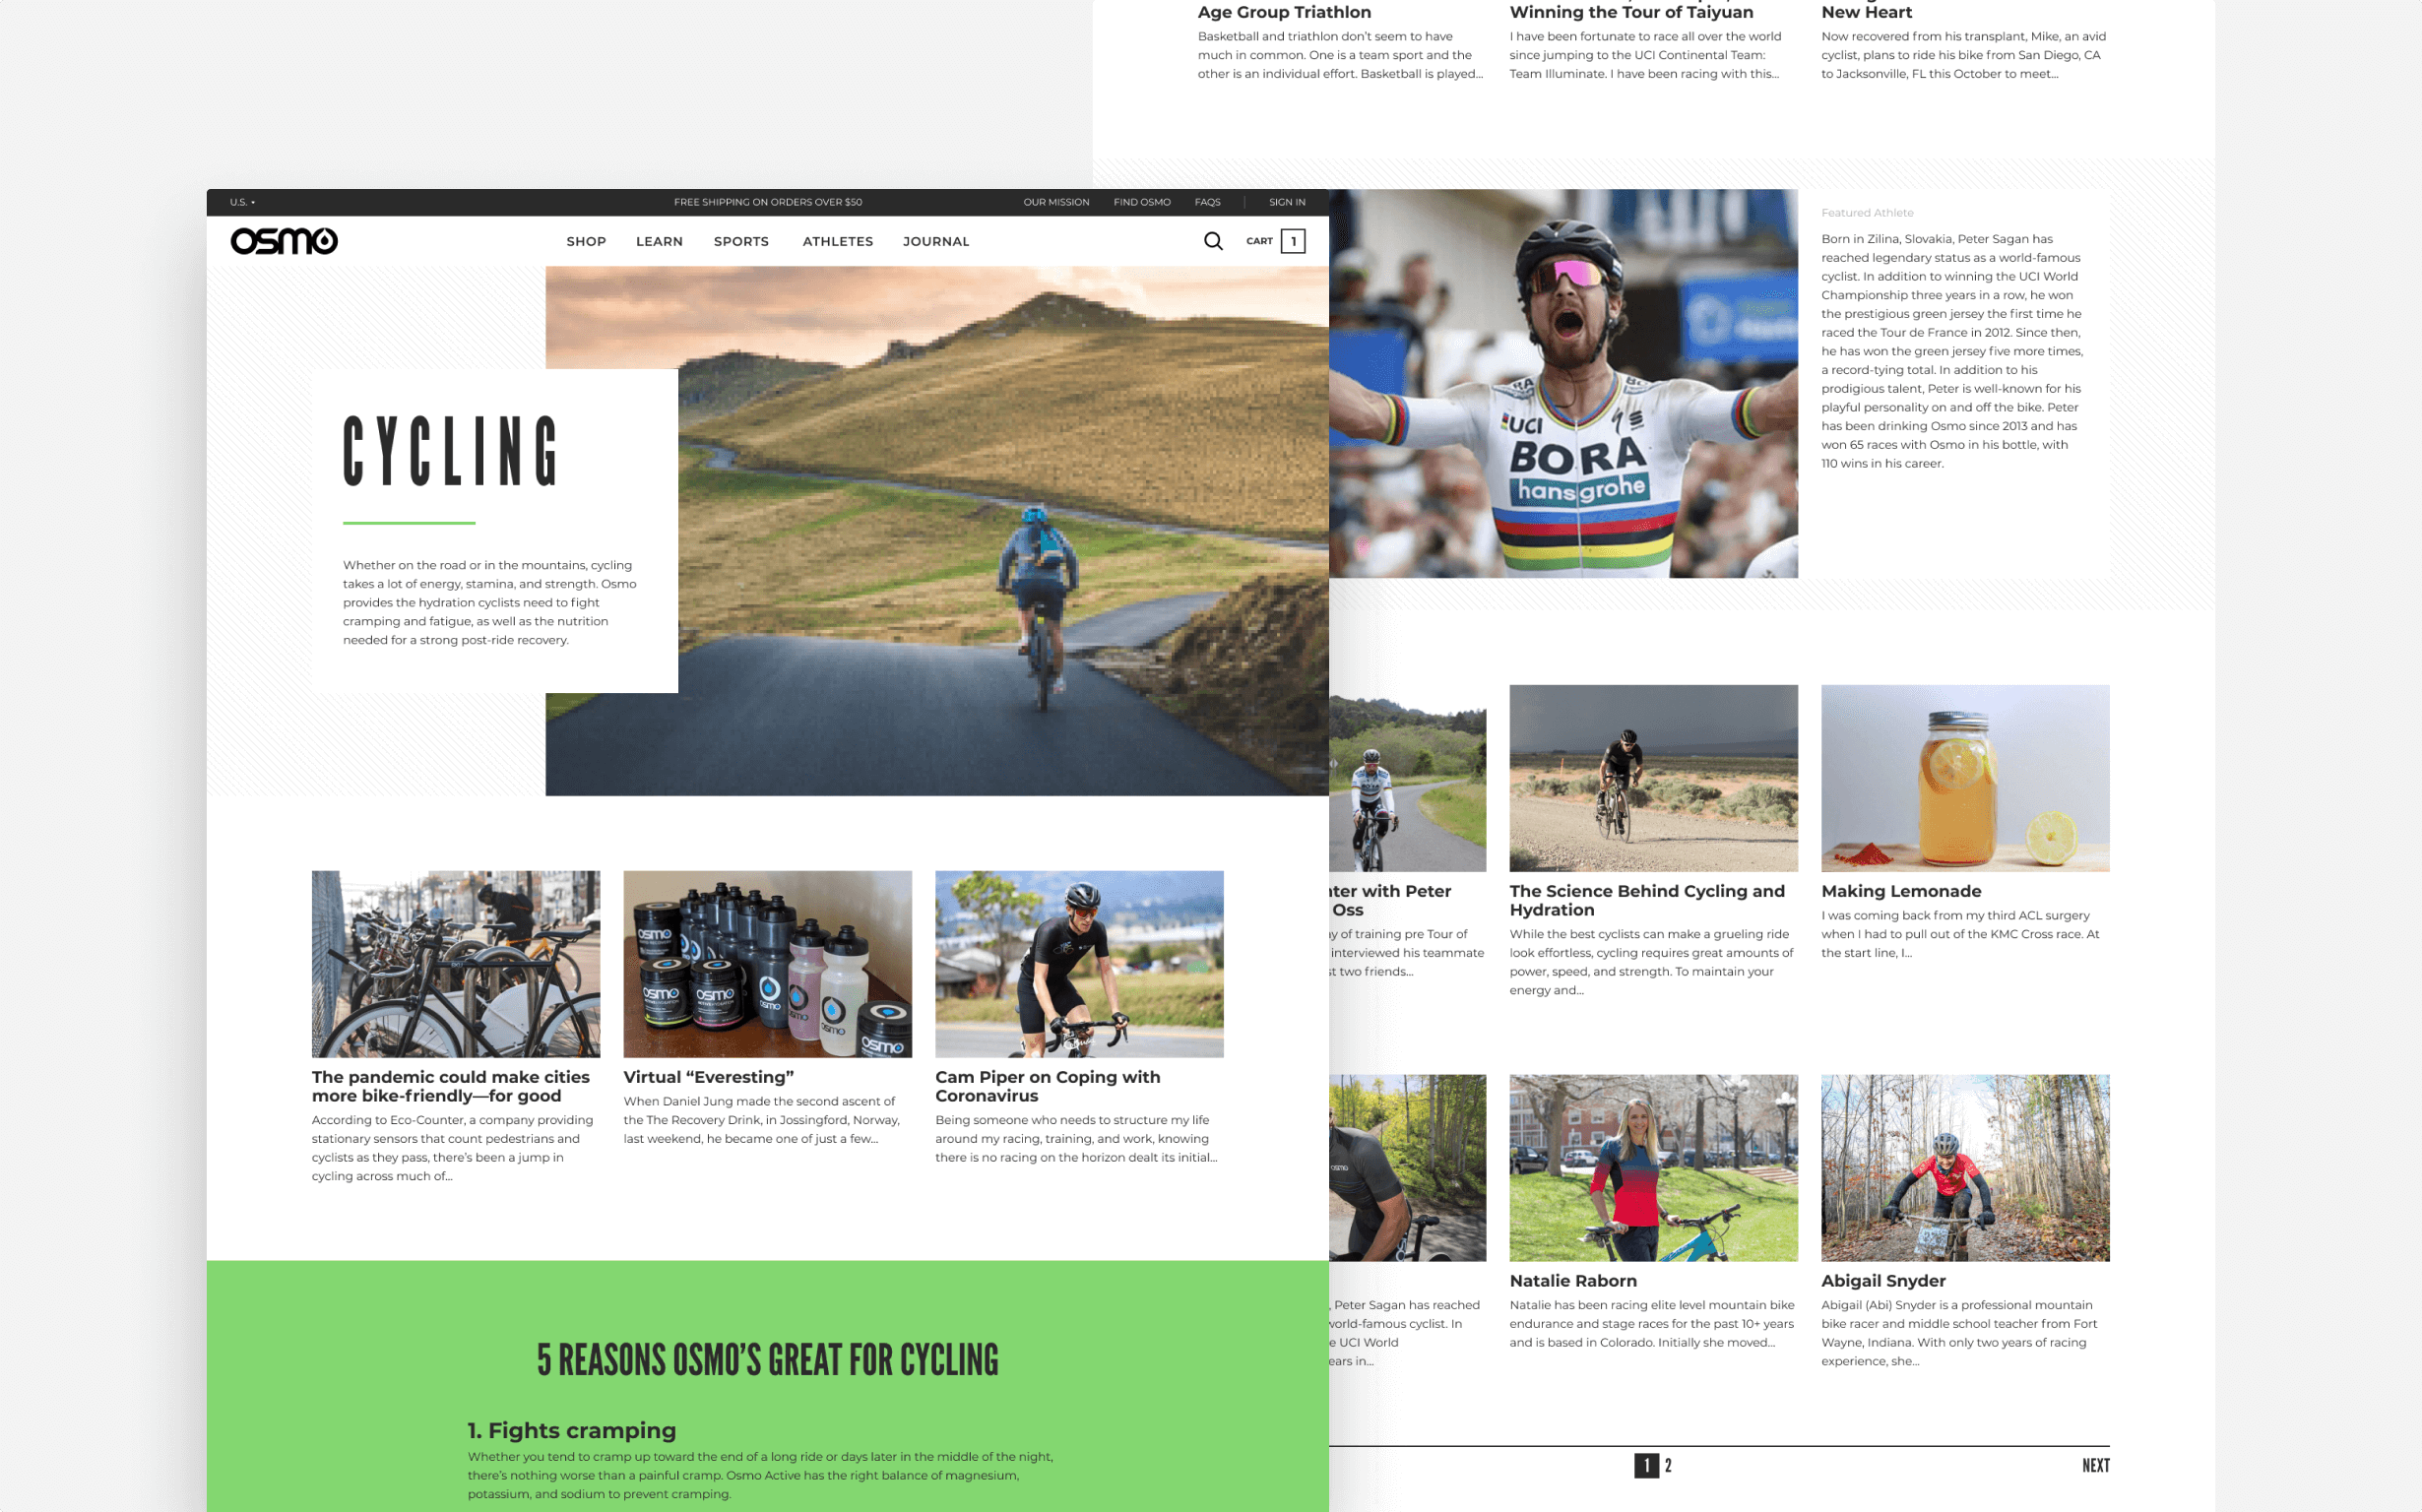 Several pages detail how Osmo can be used for sports like cycling, triathlon, and running.